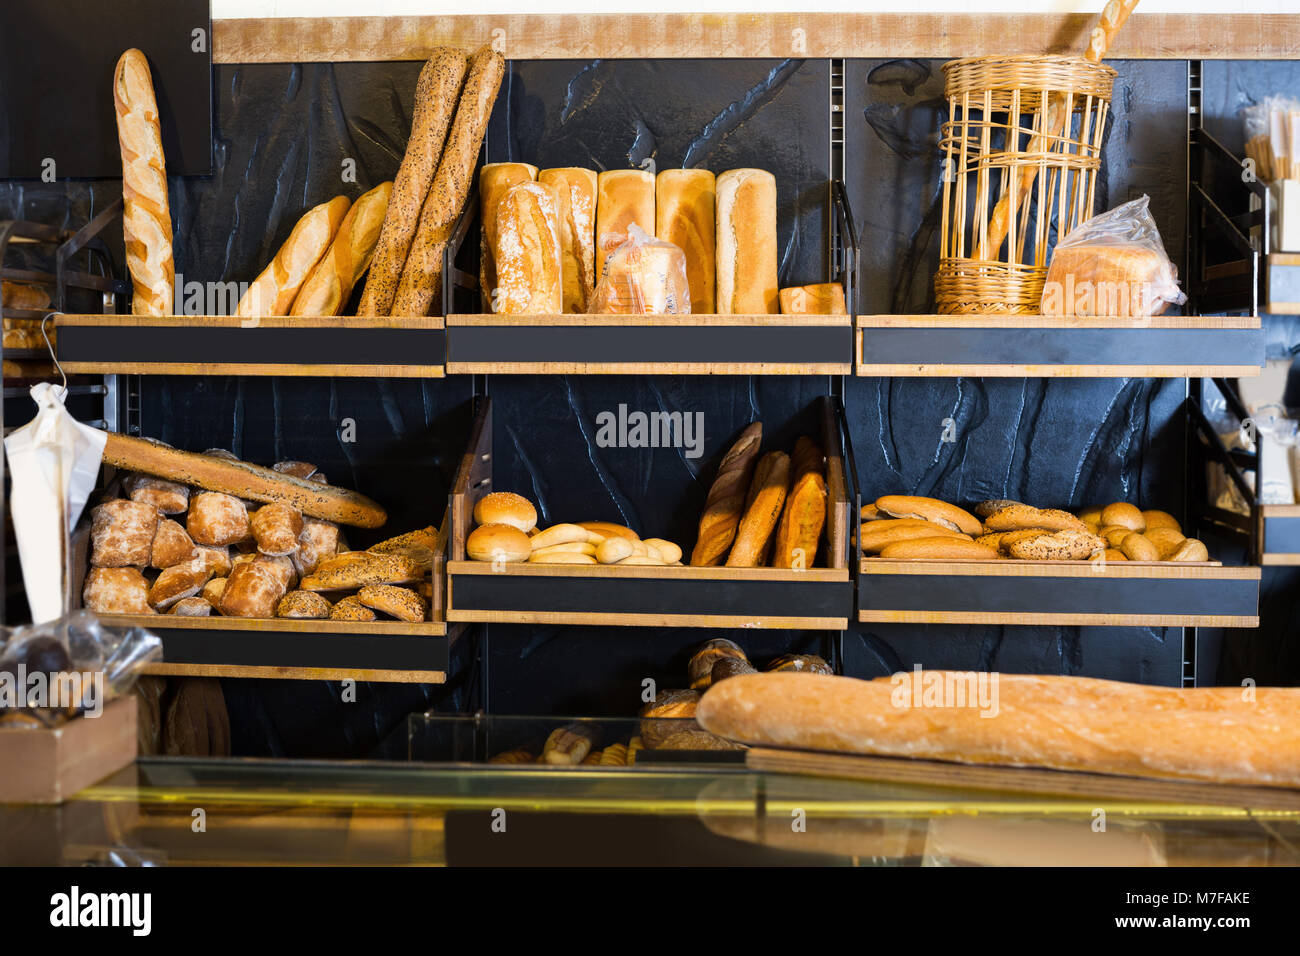 bread on shelves stock photos bread on shelves stock. Black Bedroom Furniture Sets. Home Design Ideas